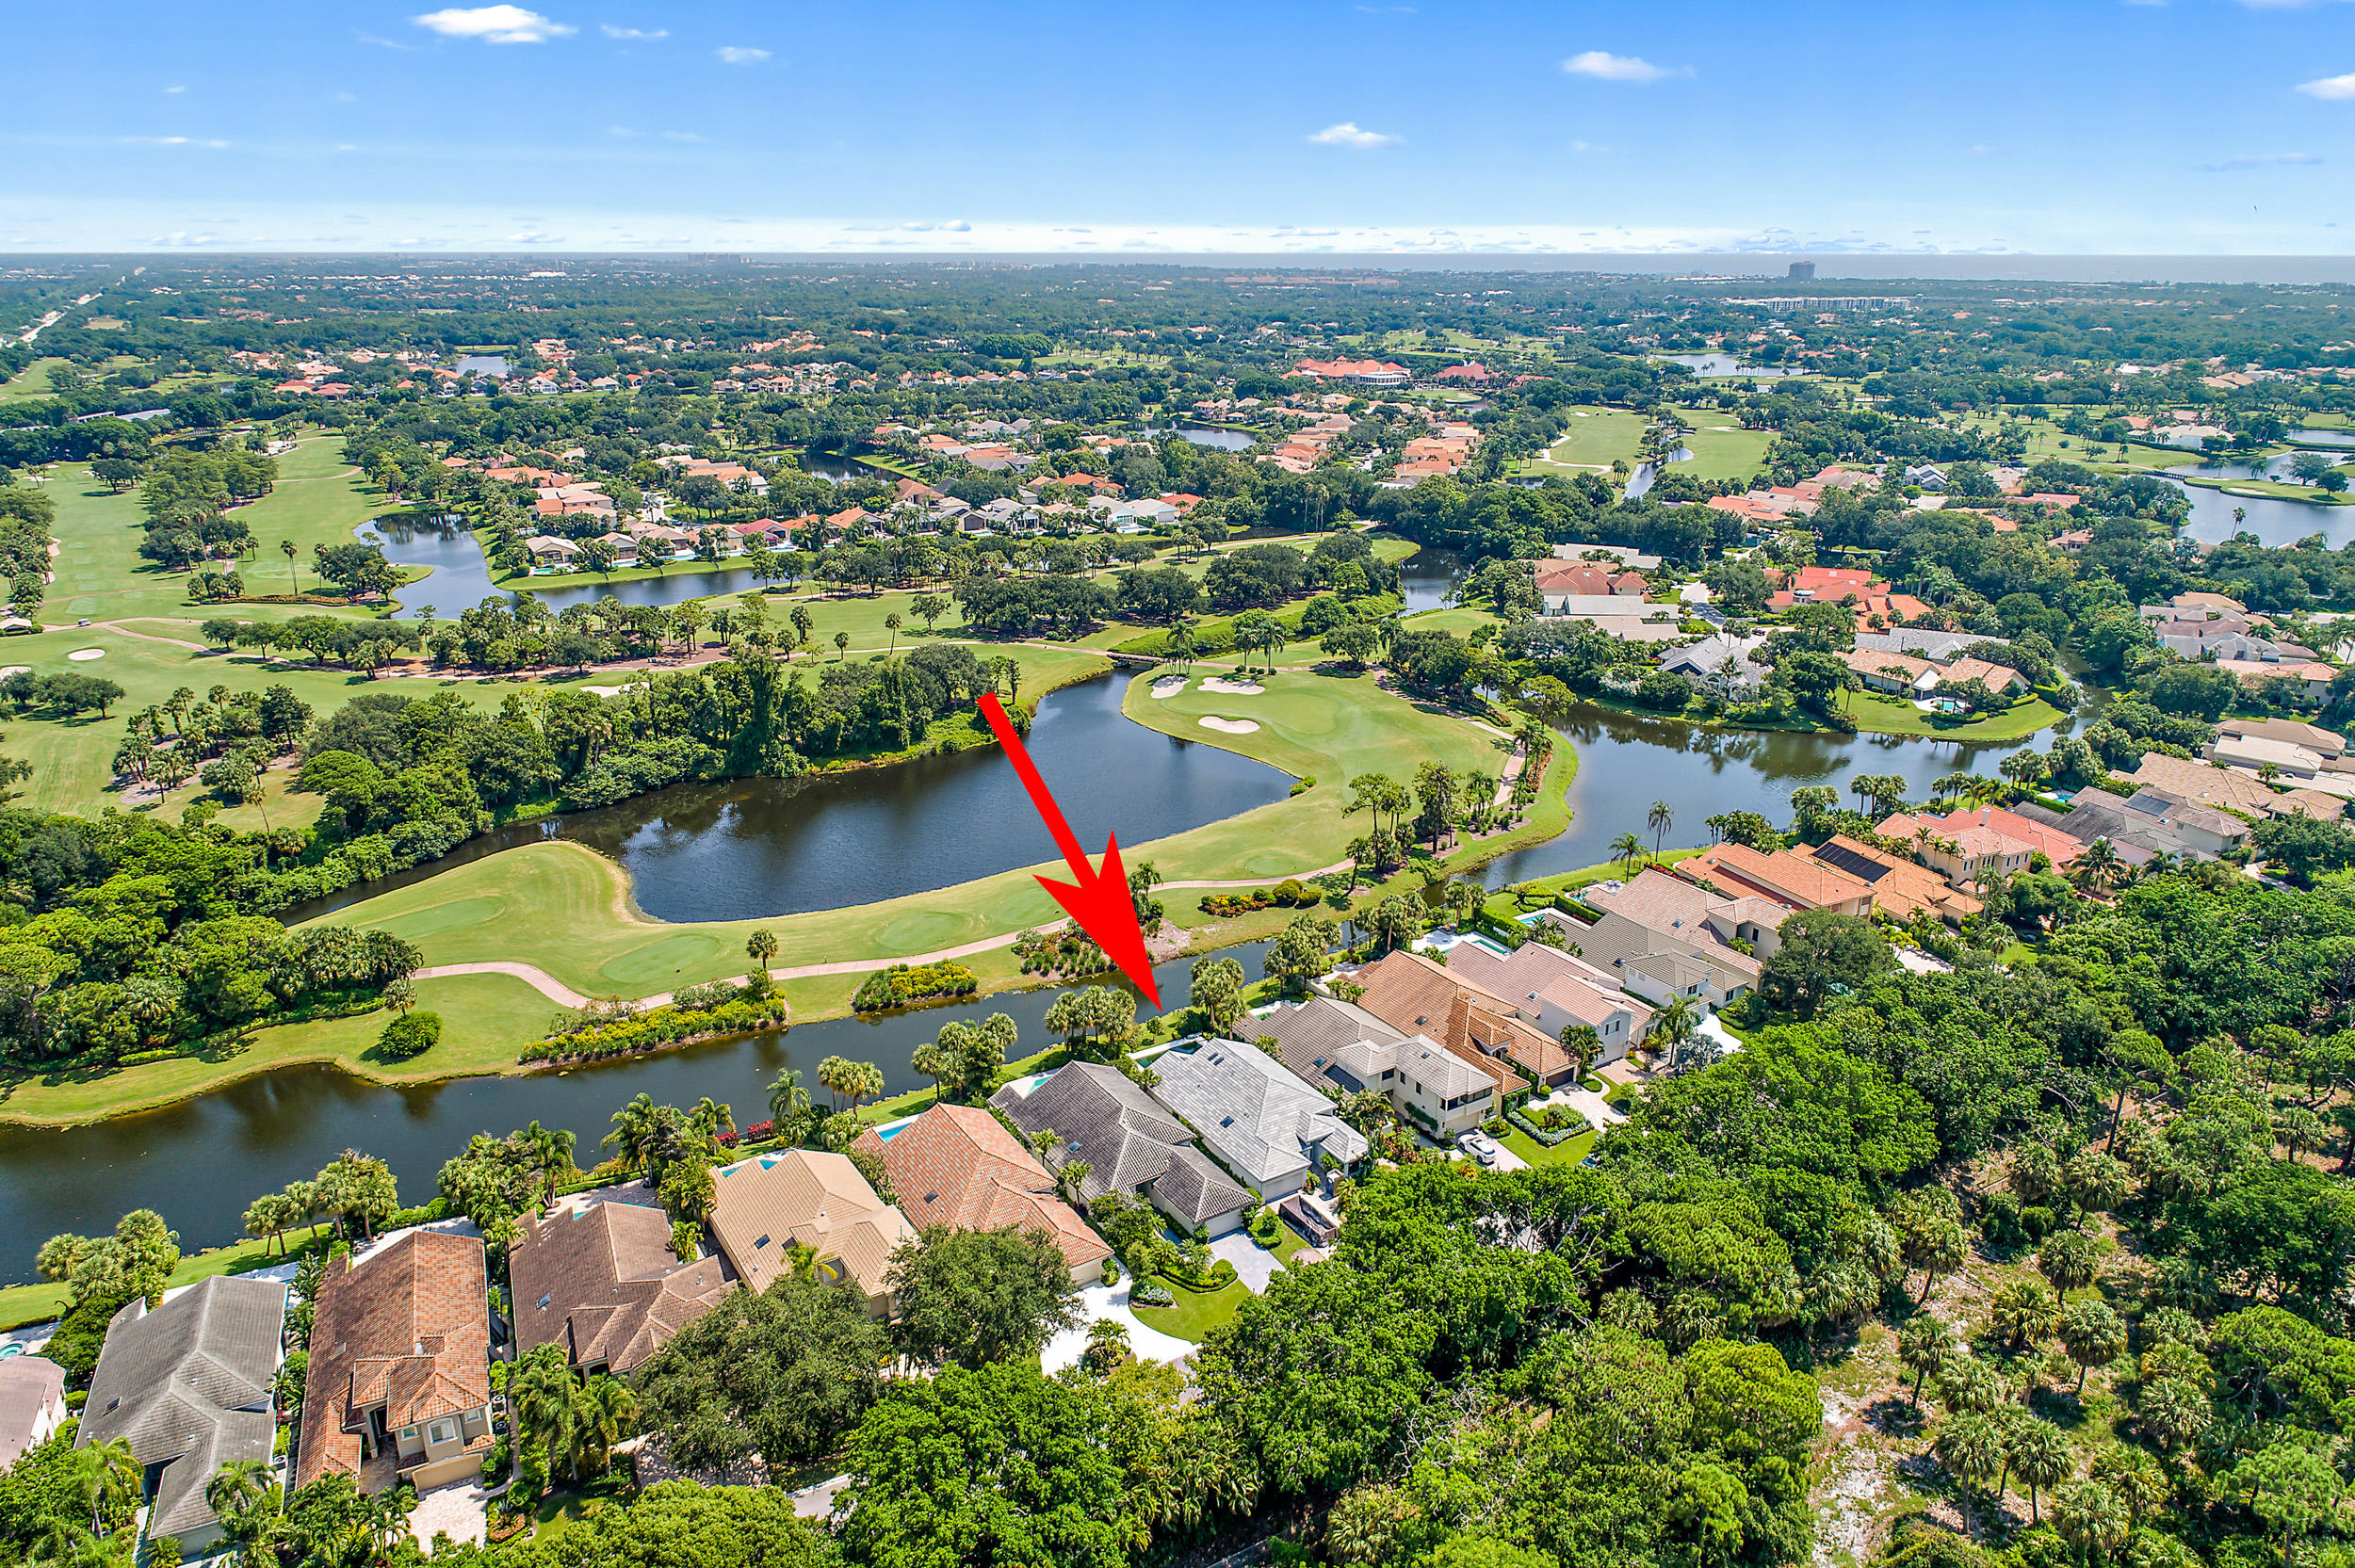 3811 Toulouse Drive, Palm Beach Gardens, Florida 33410, 3 Bedrooms Bedrooms, ,4 BathroomsBathrooms,A,Single family,Toulouse,RX-10545029